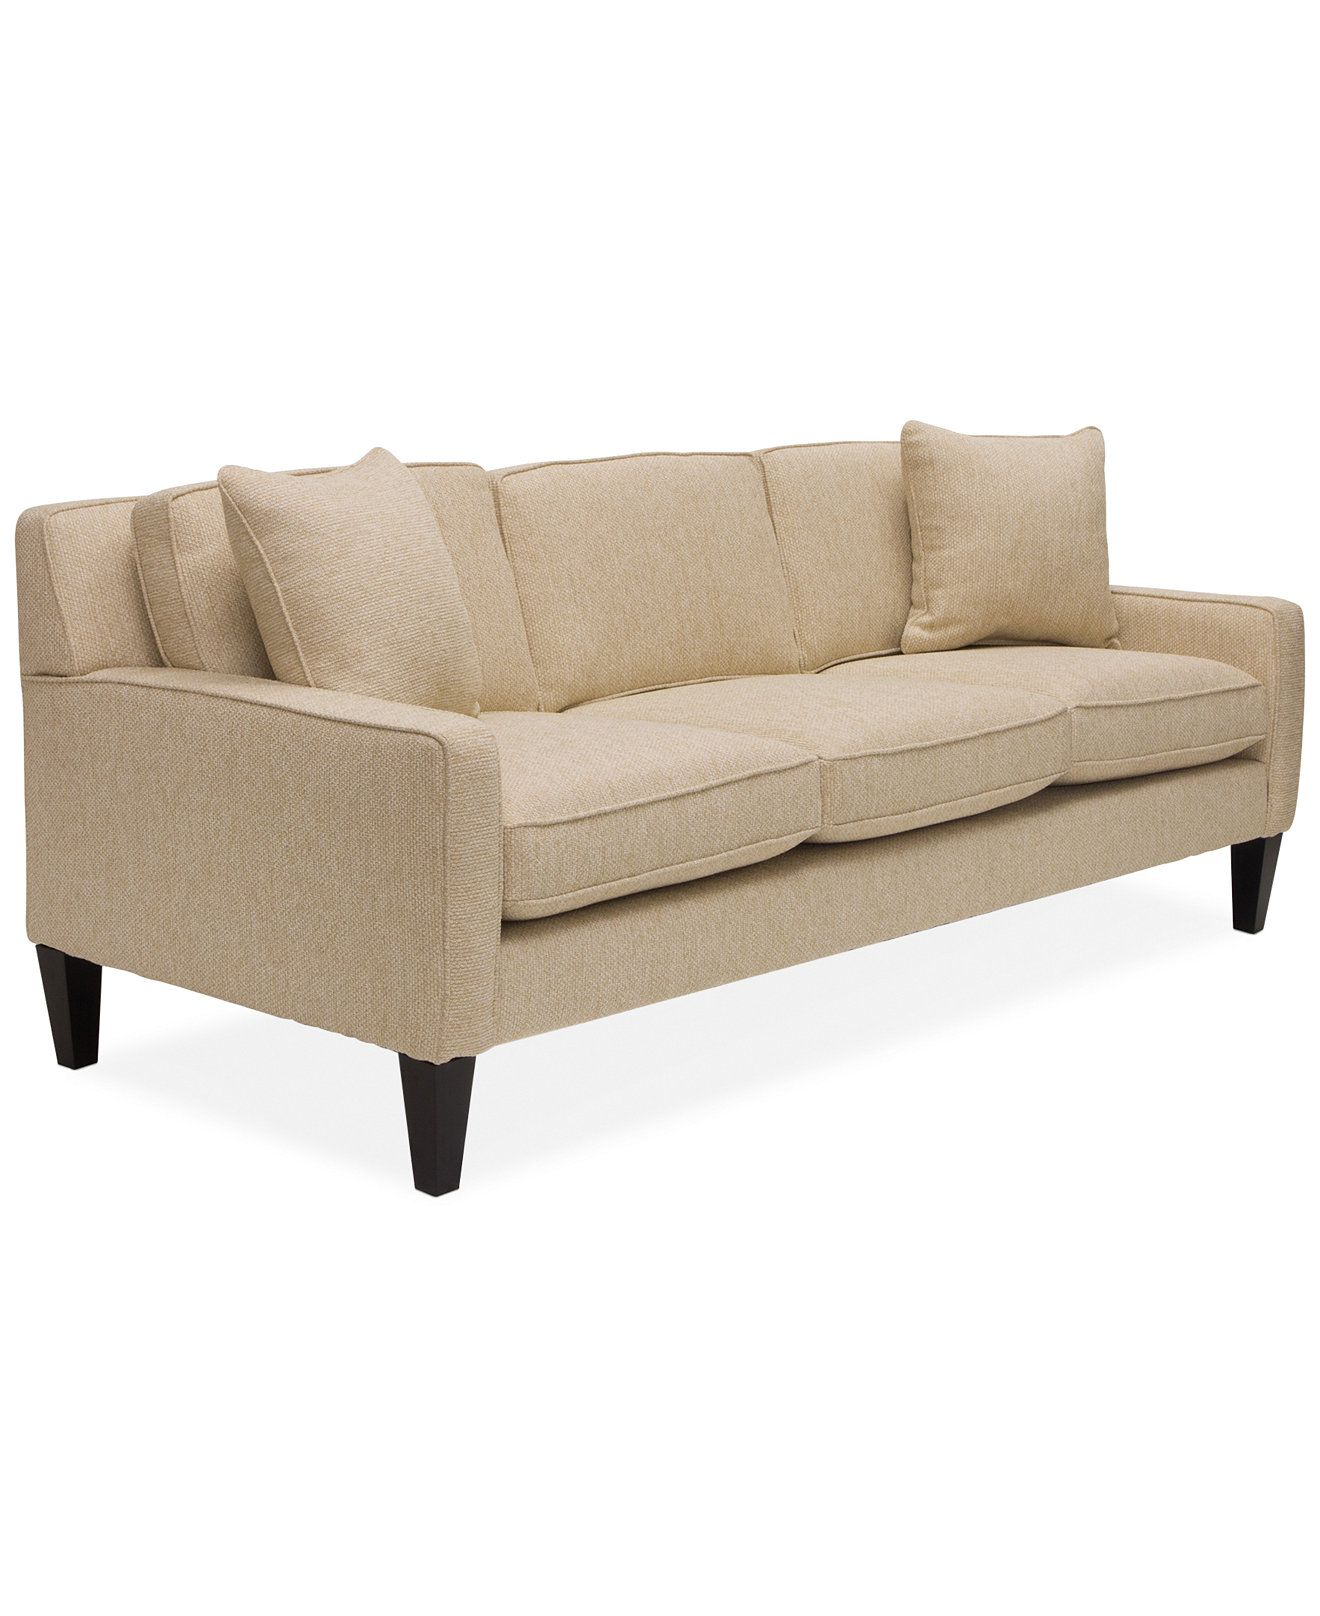 Tricia Fabric Sofa Couches & Sofas Furniture Macy s